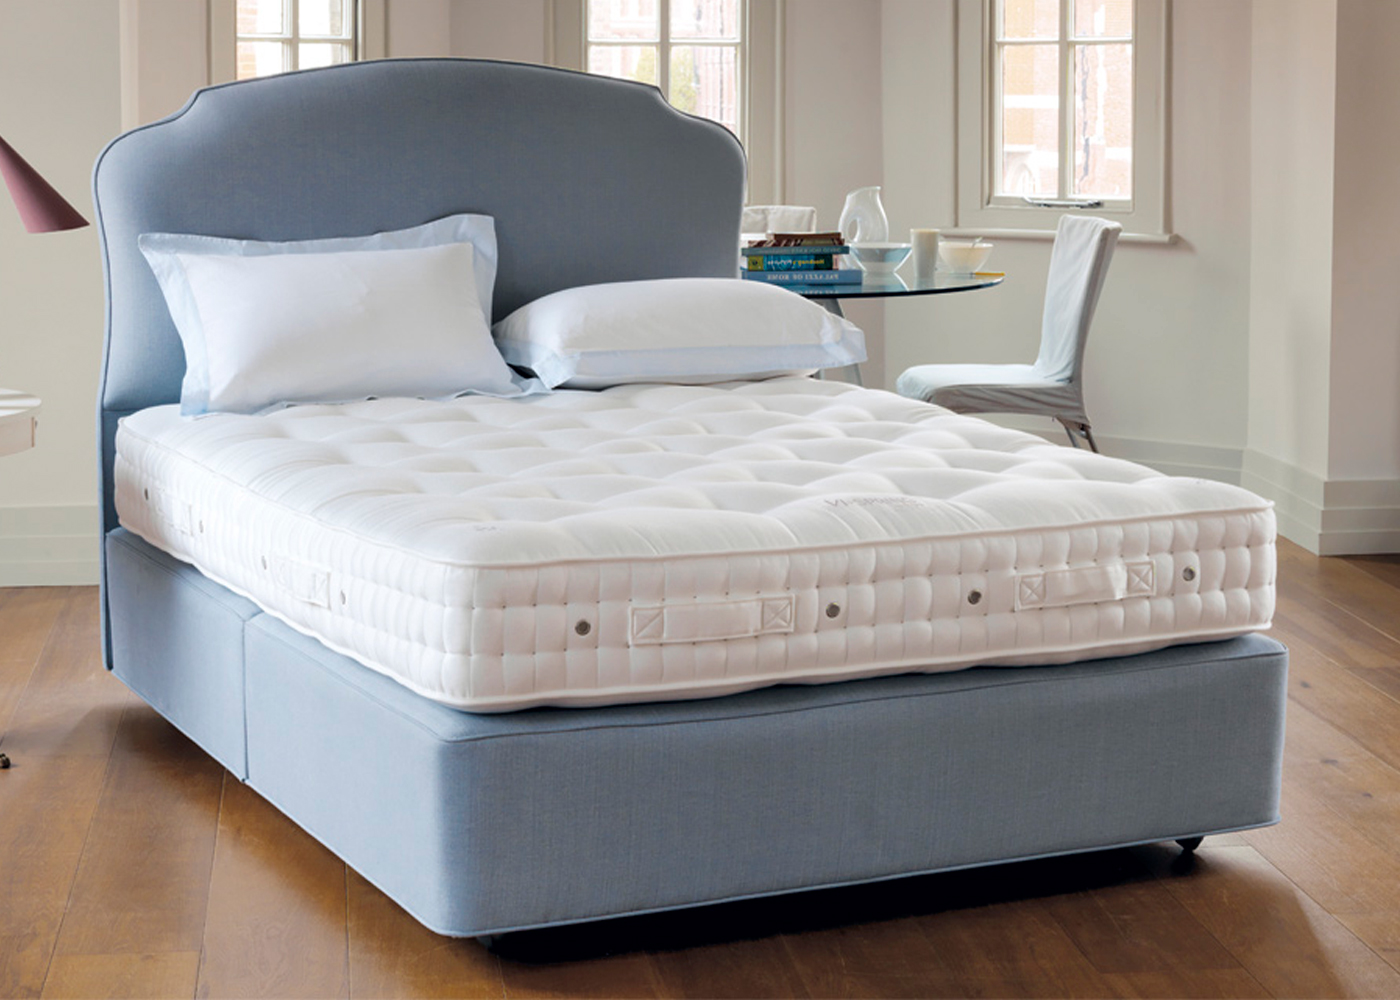 Vi Mattress Vi Spring Baronet Superb Bed Midfurn Furniture Superstore